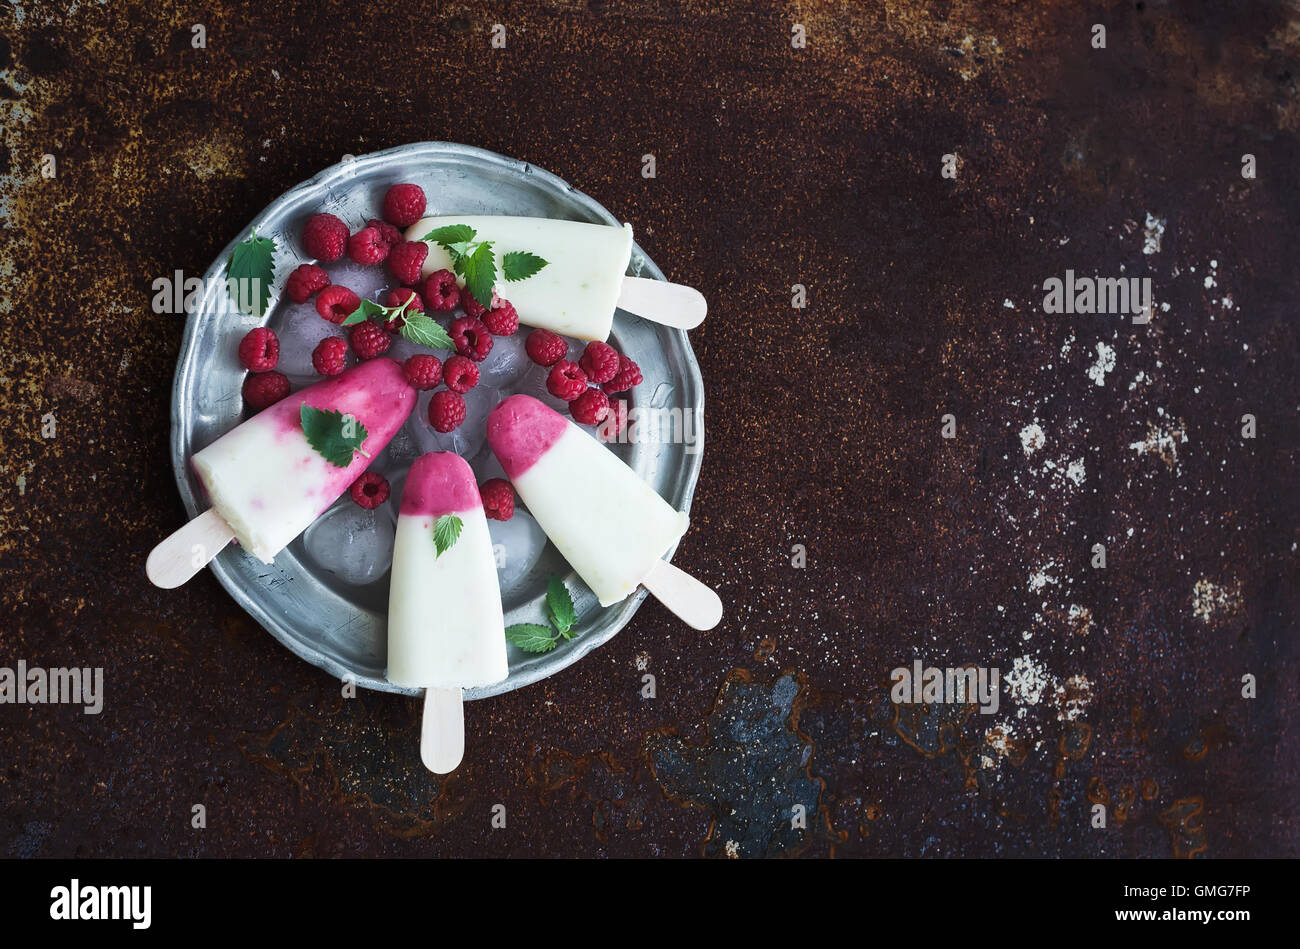 Raspberry lime yougurt ice-creams or popsicles with fresh berries and ice-cubeson - Stock Image